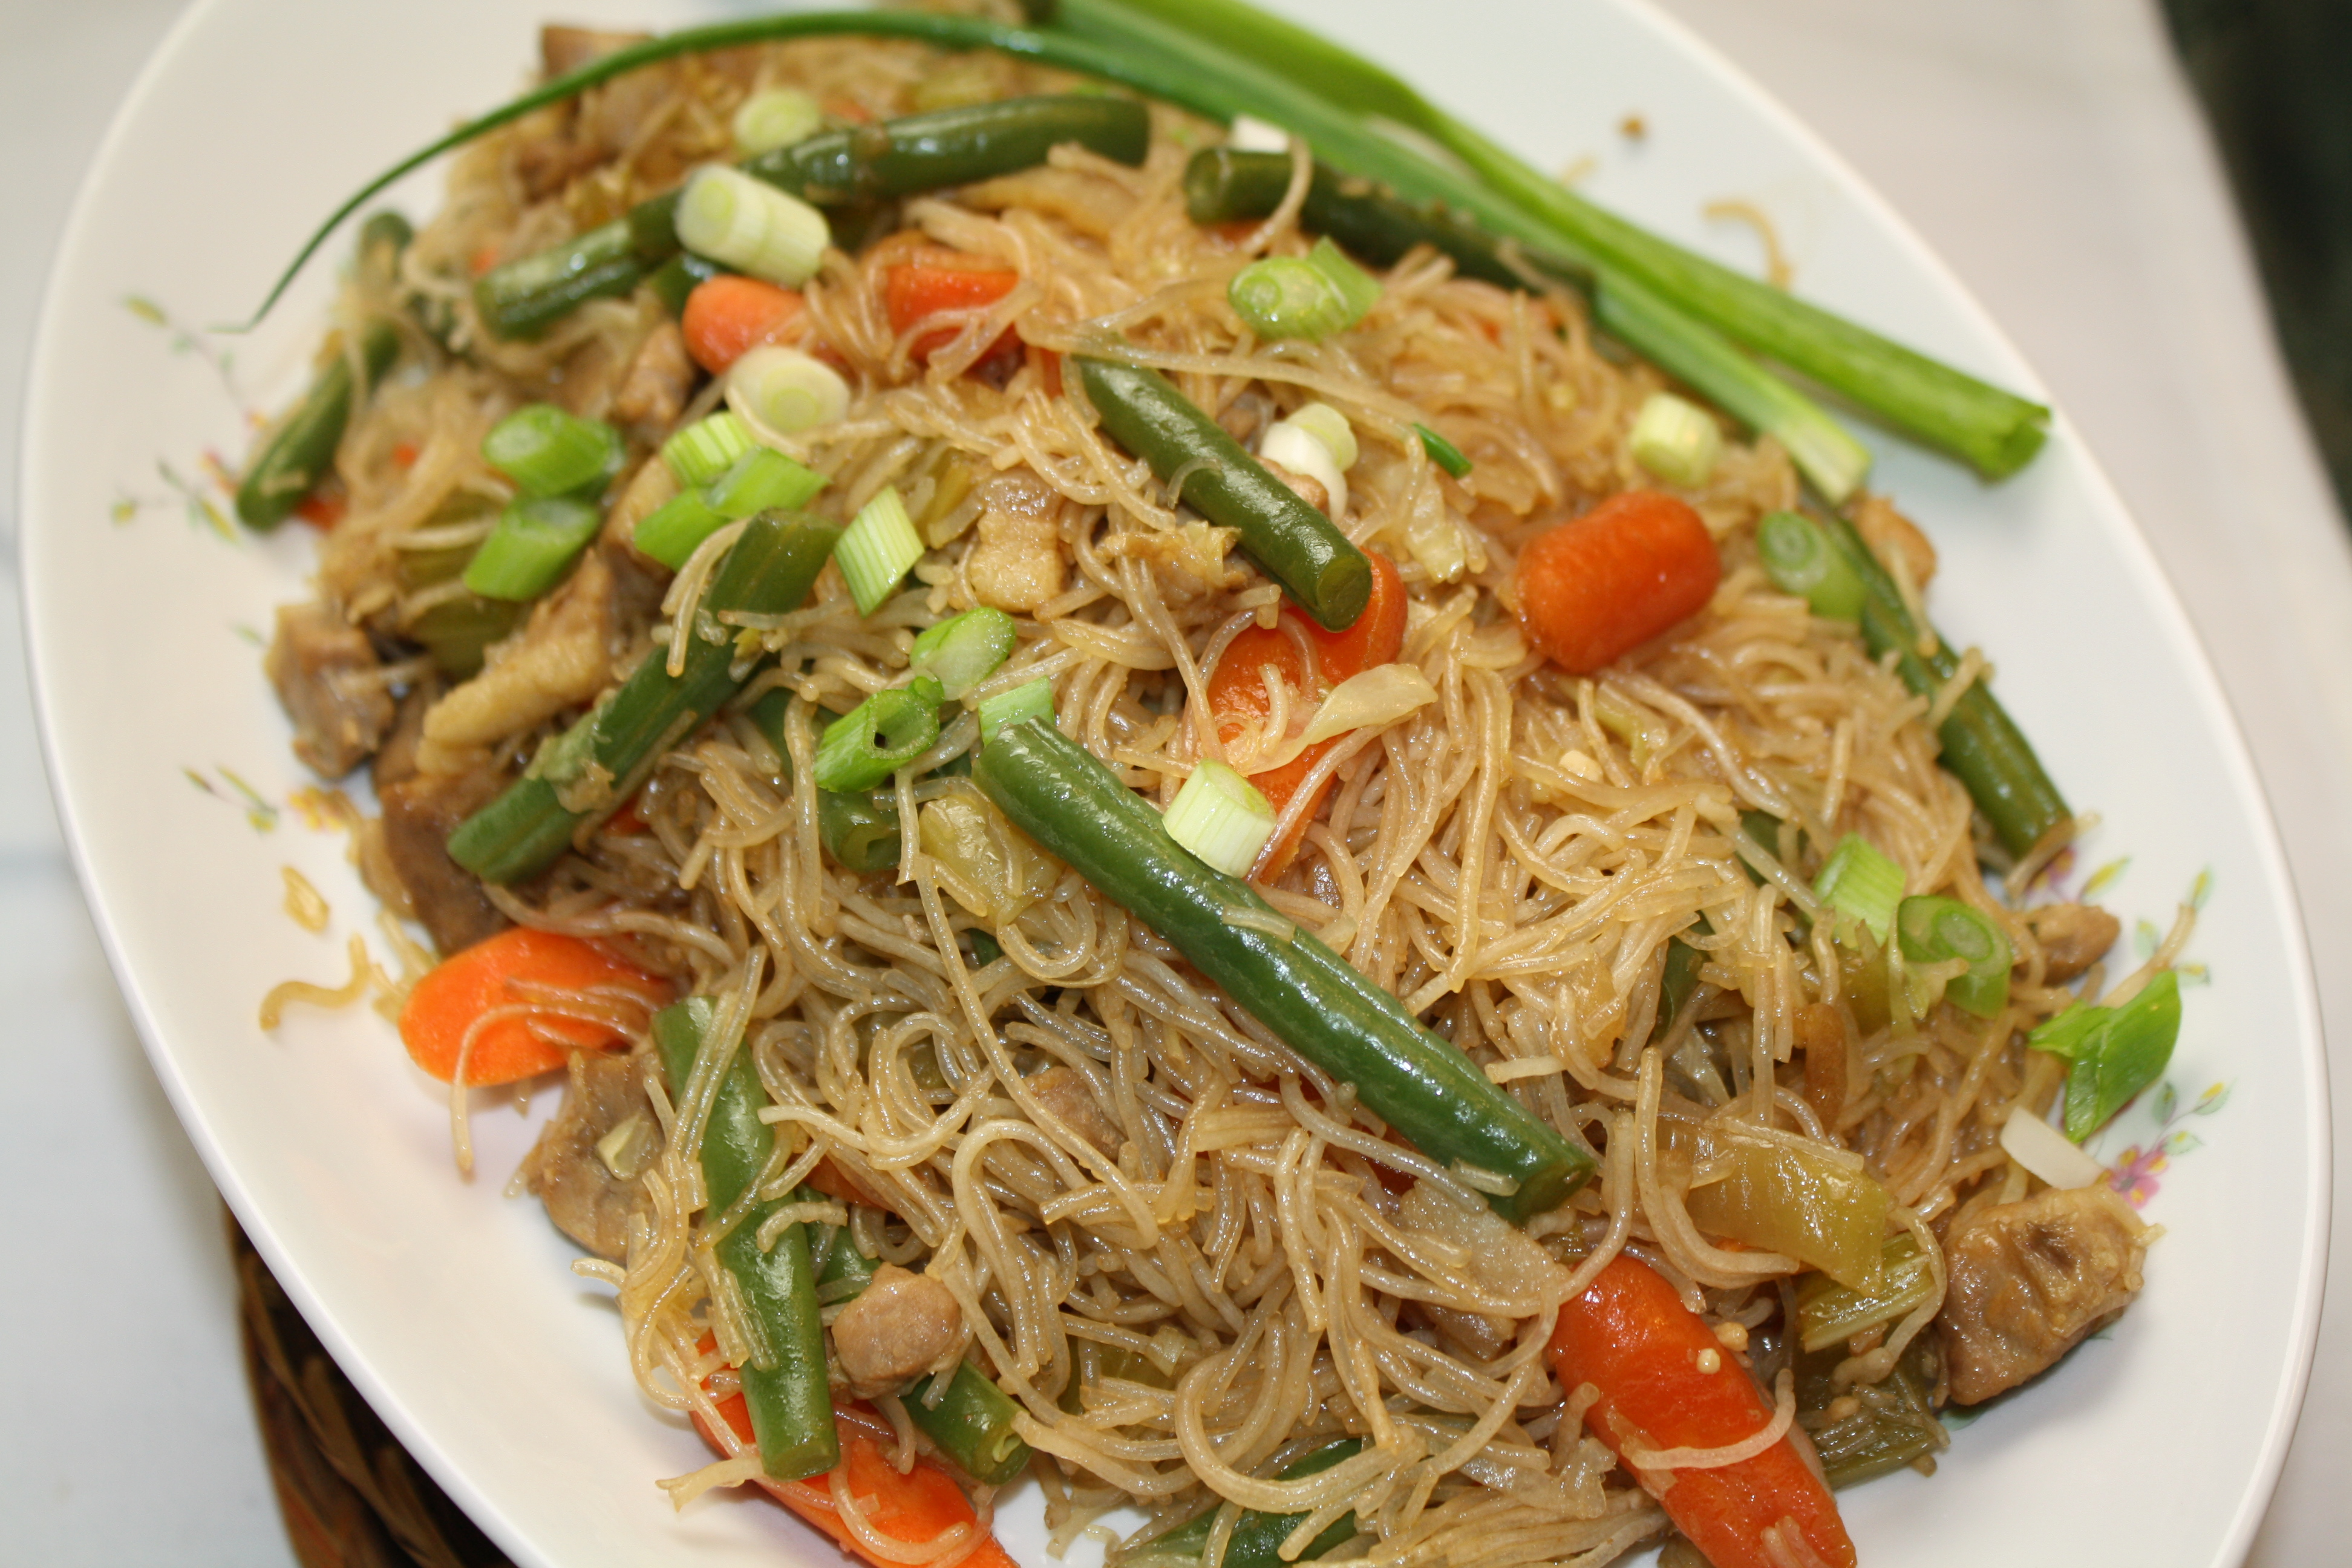 Different Noodles - Dish One